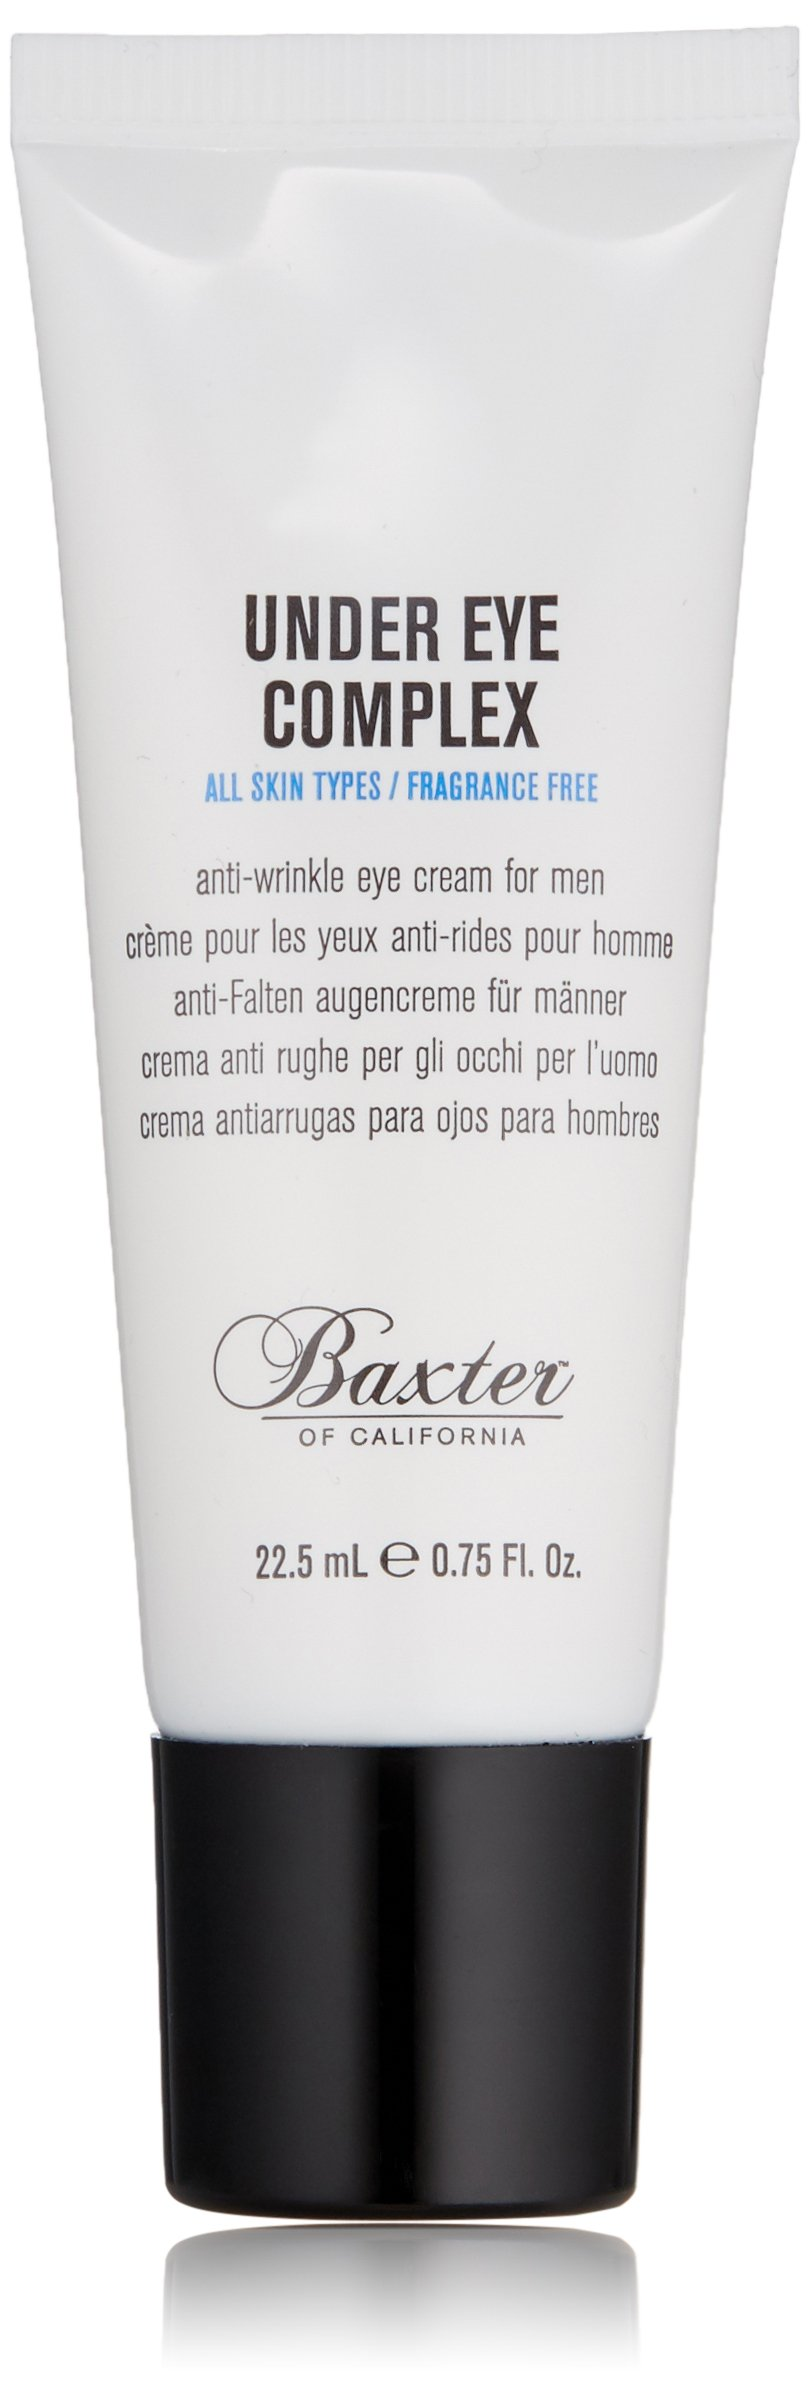 Baxter of California Line Reducing Under Eye Cream, Depuffs and Smooths Wrinkles, All Skin Types, 0.75 fl. oz.